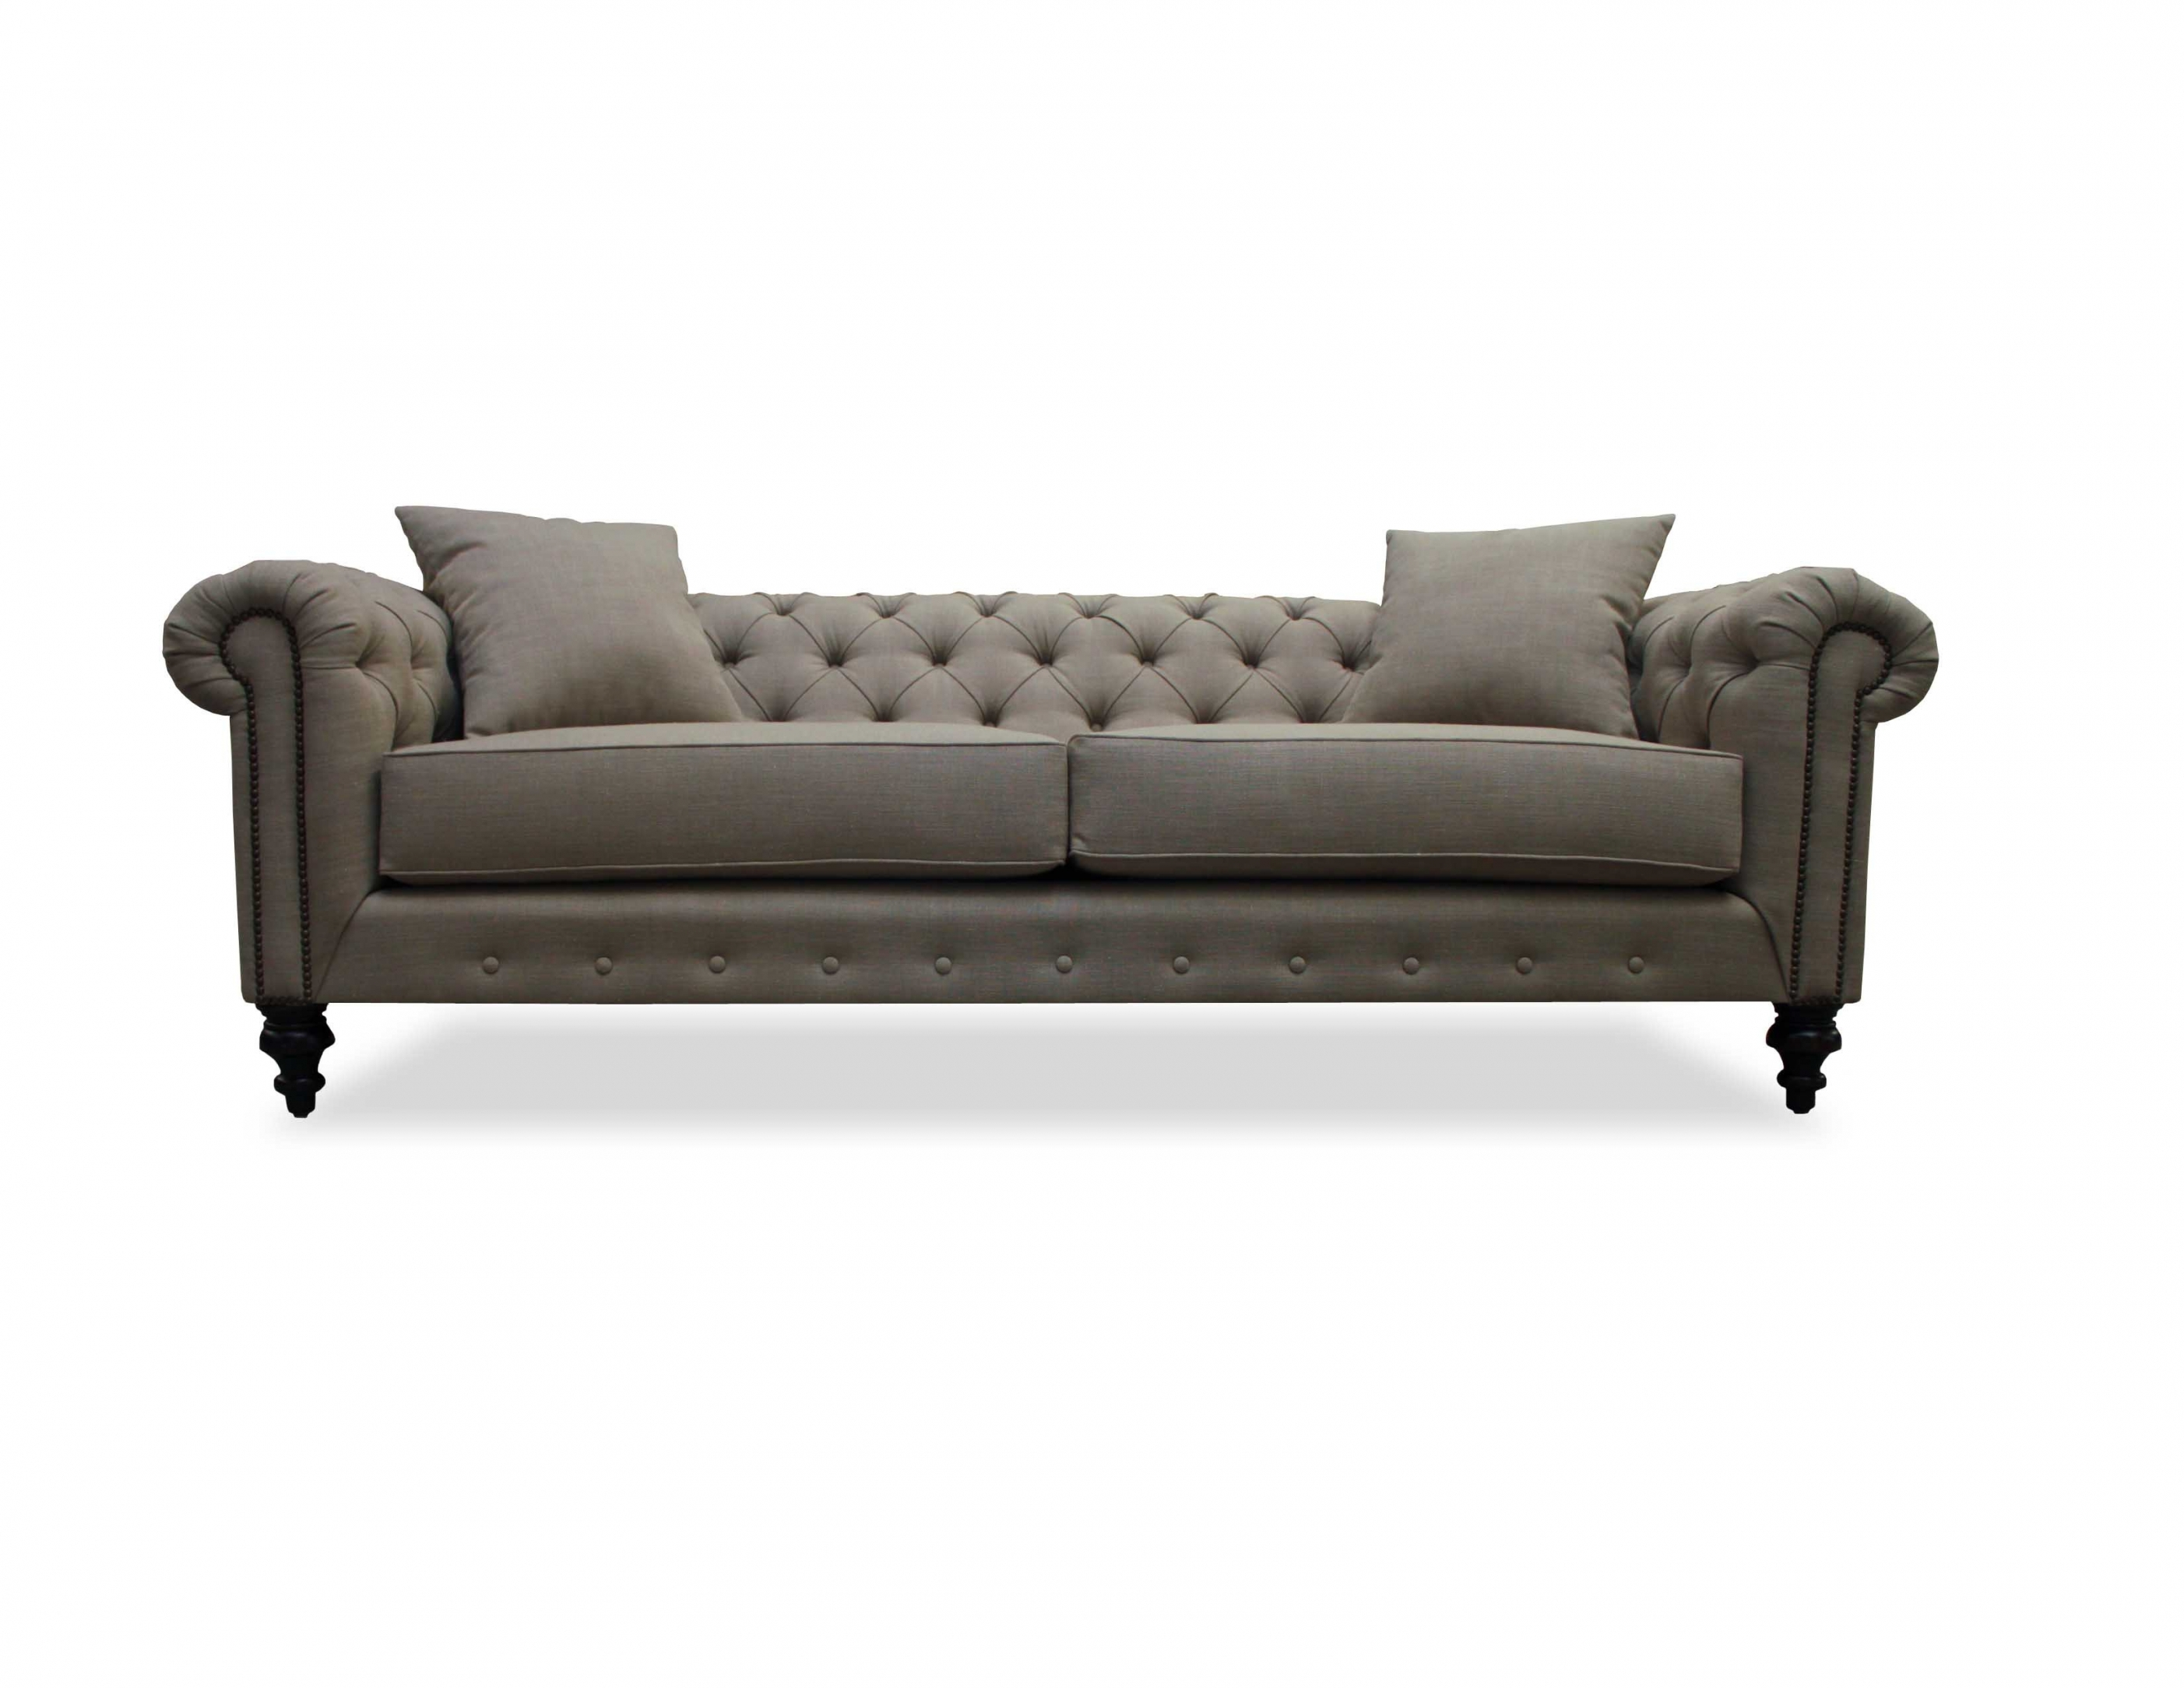 Sofa Simple Tufted Modern Sofa Cool Home Design Modern On Tufted With Regard To Cool Sofa Ideas (Image 13 of 15)